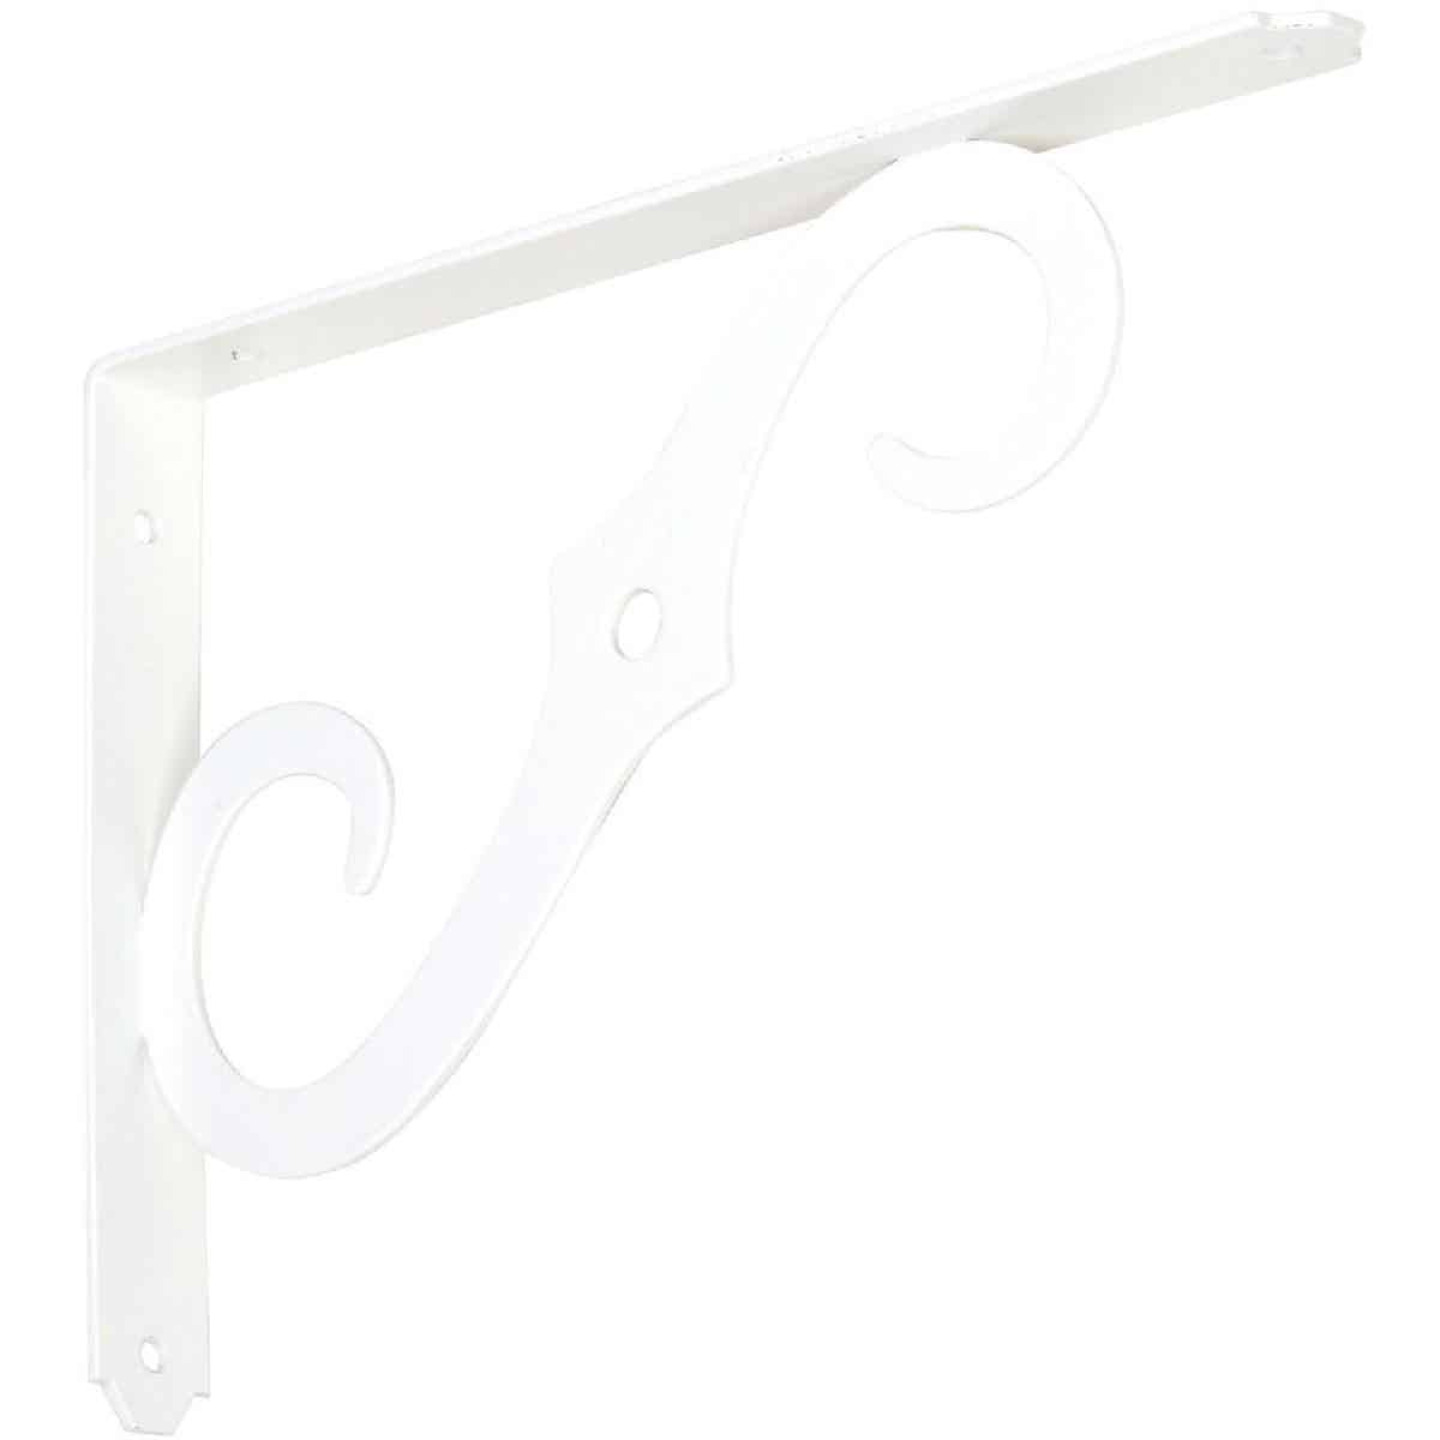 National 152 10 In. D. x 7 In. H. Antique White Steel Ornamental Shelf Bracket/Plant Hanger Image 1